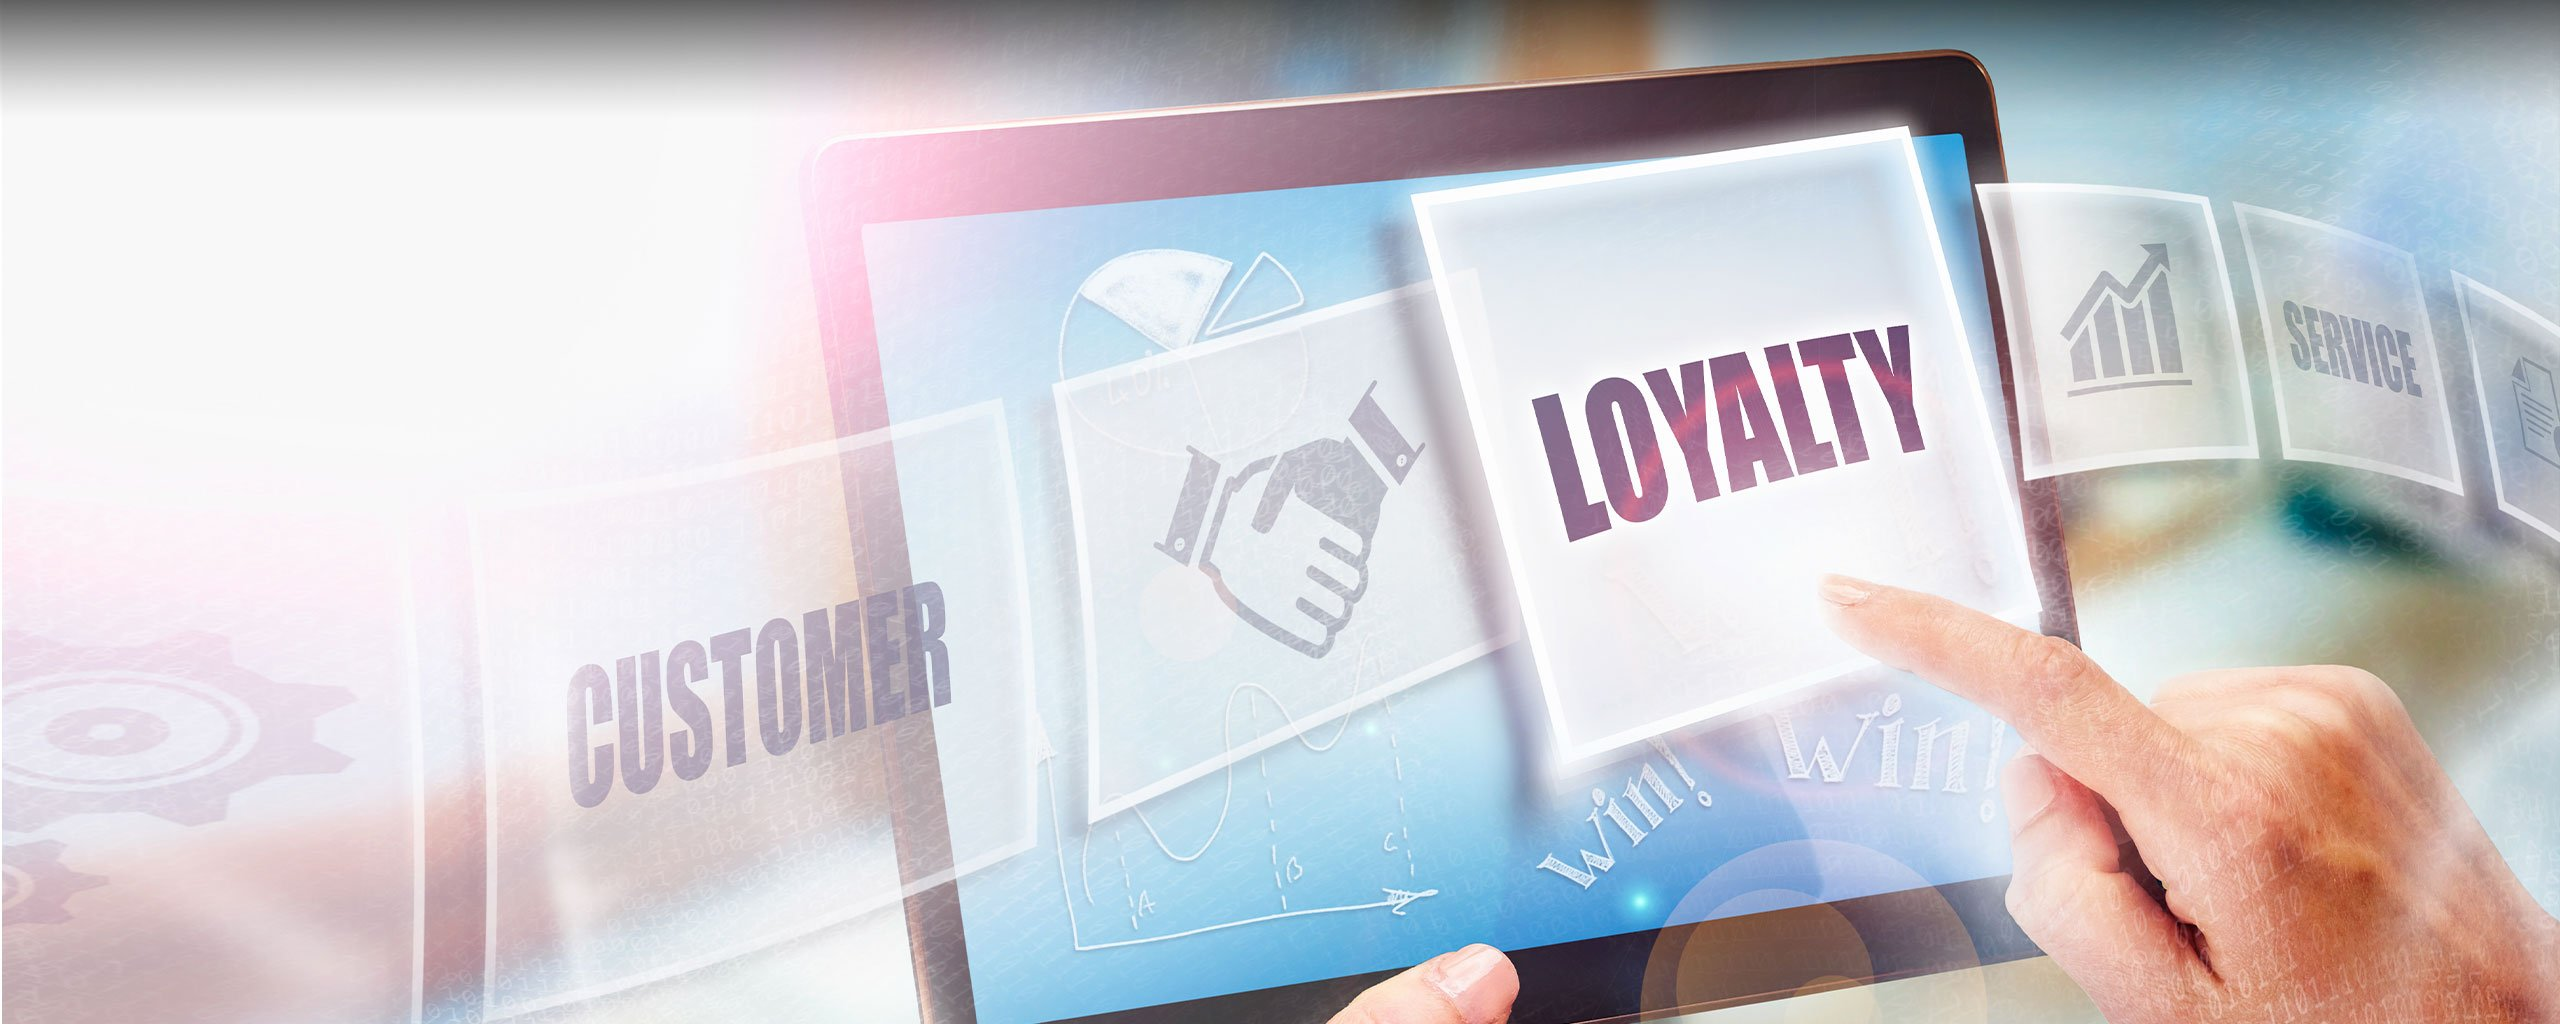 Relationship Advice: Why you Must Build Trust Before you Expect Customer Loyalty